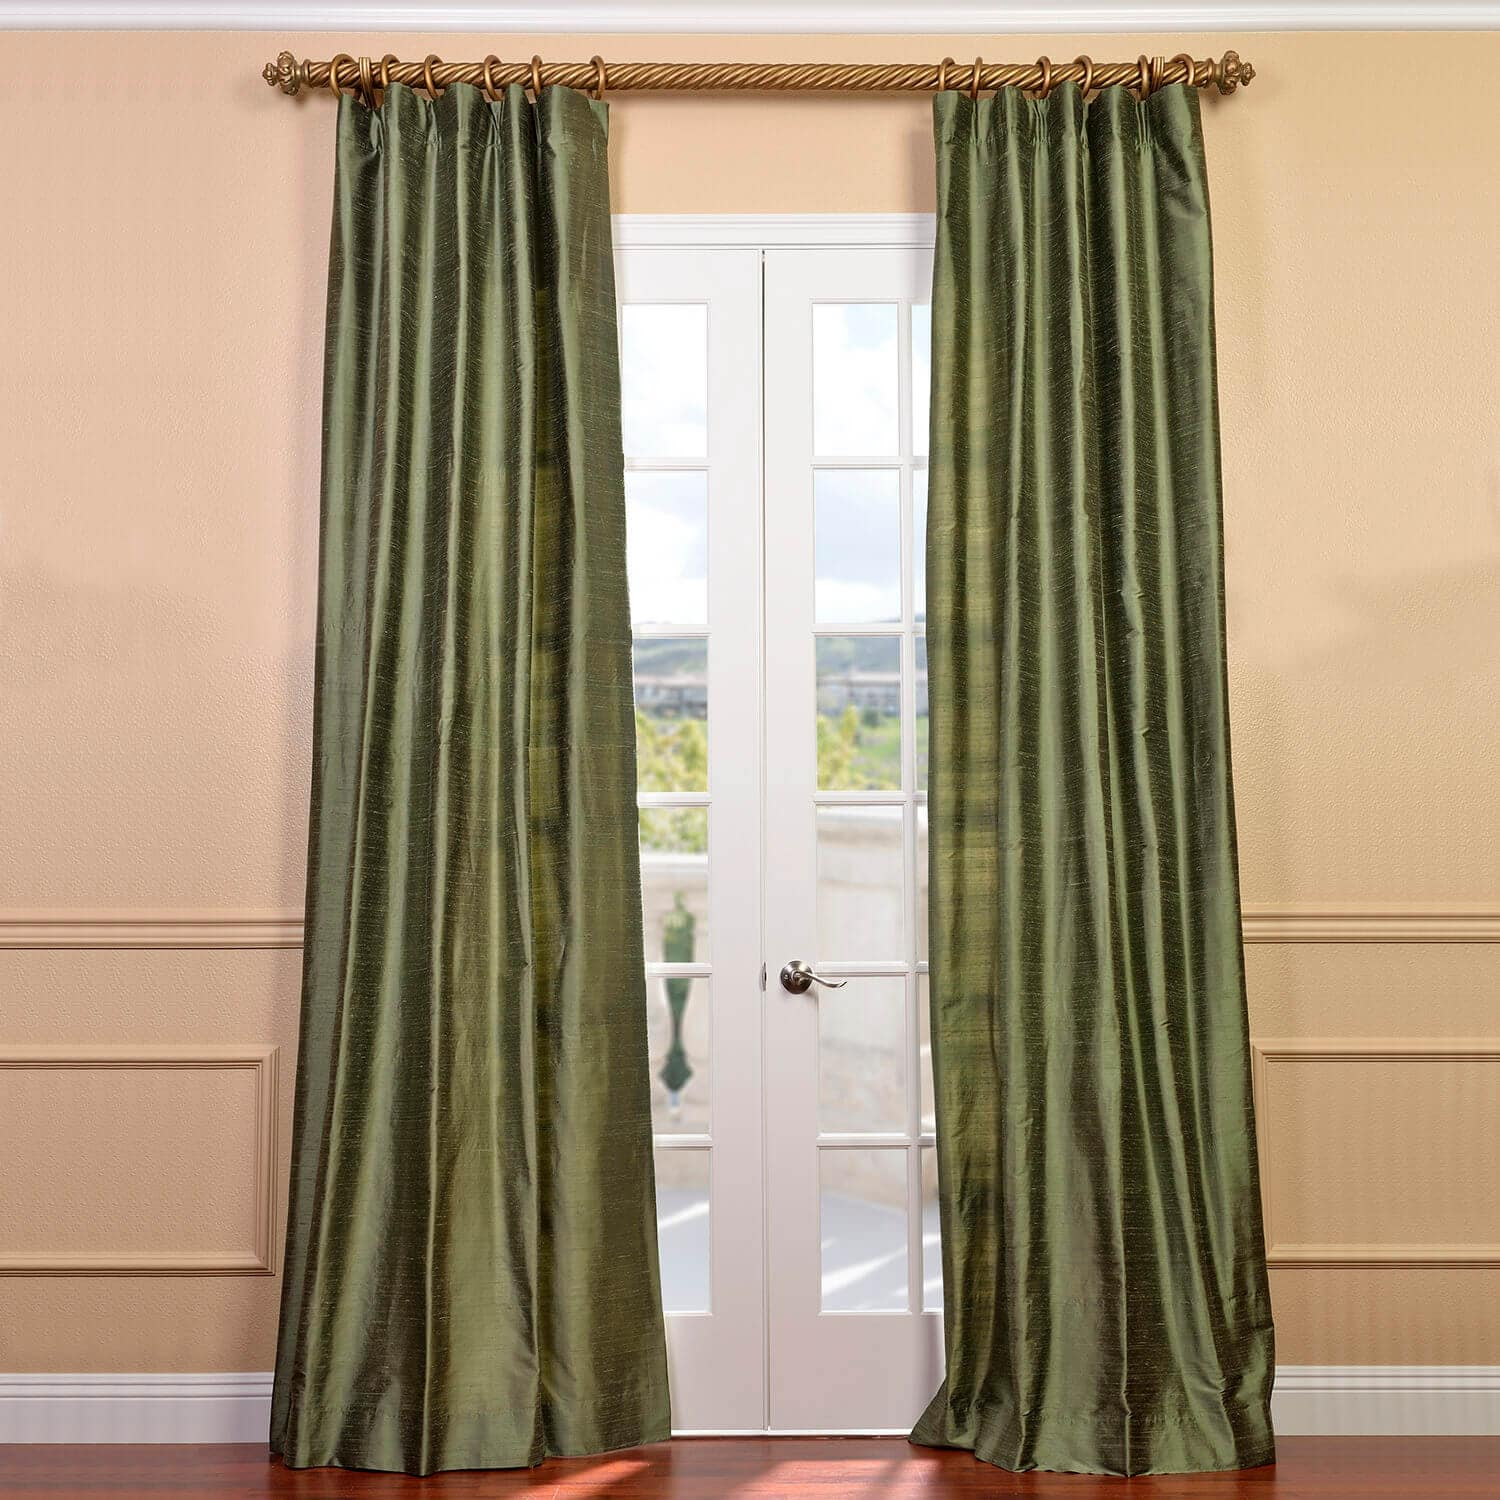 from curtainshoponline com curtain popular shop curtains drapes more and items the